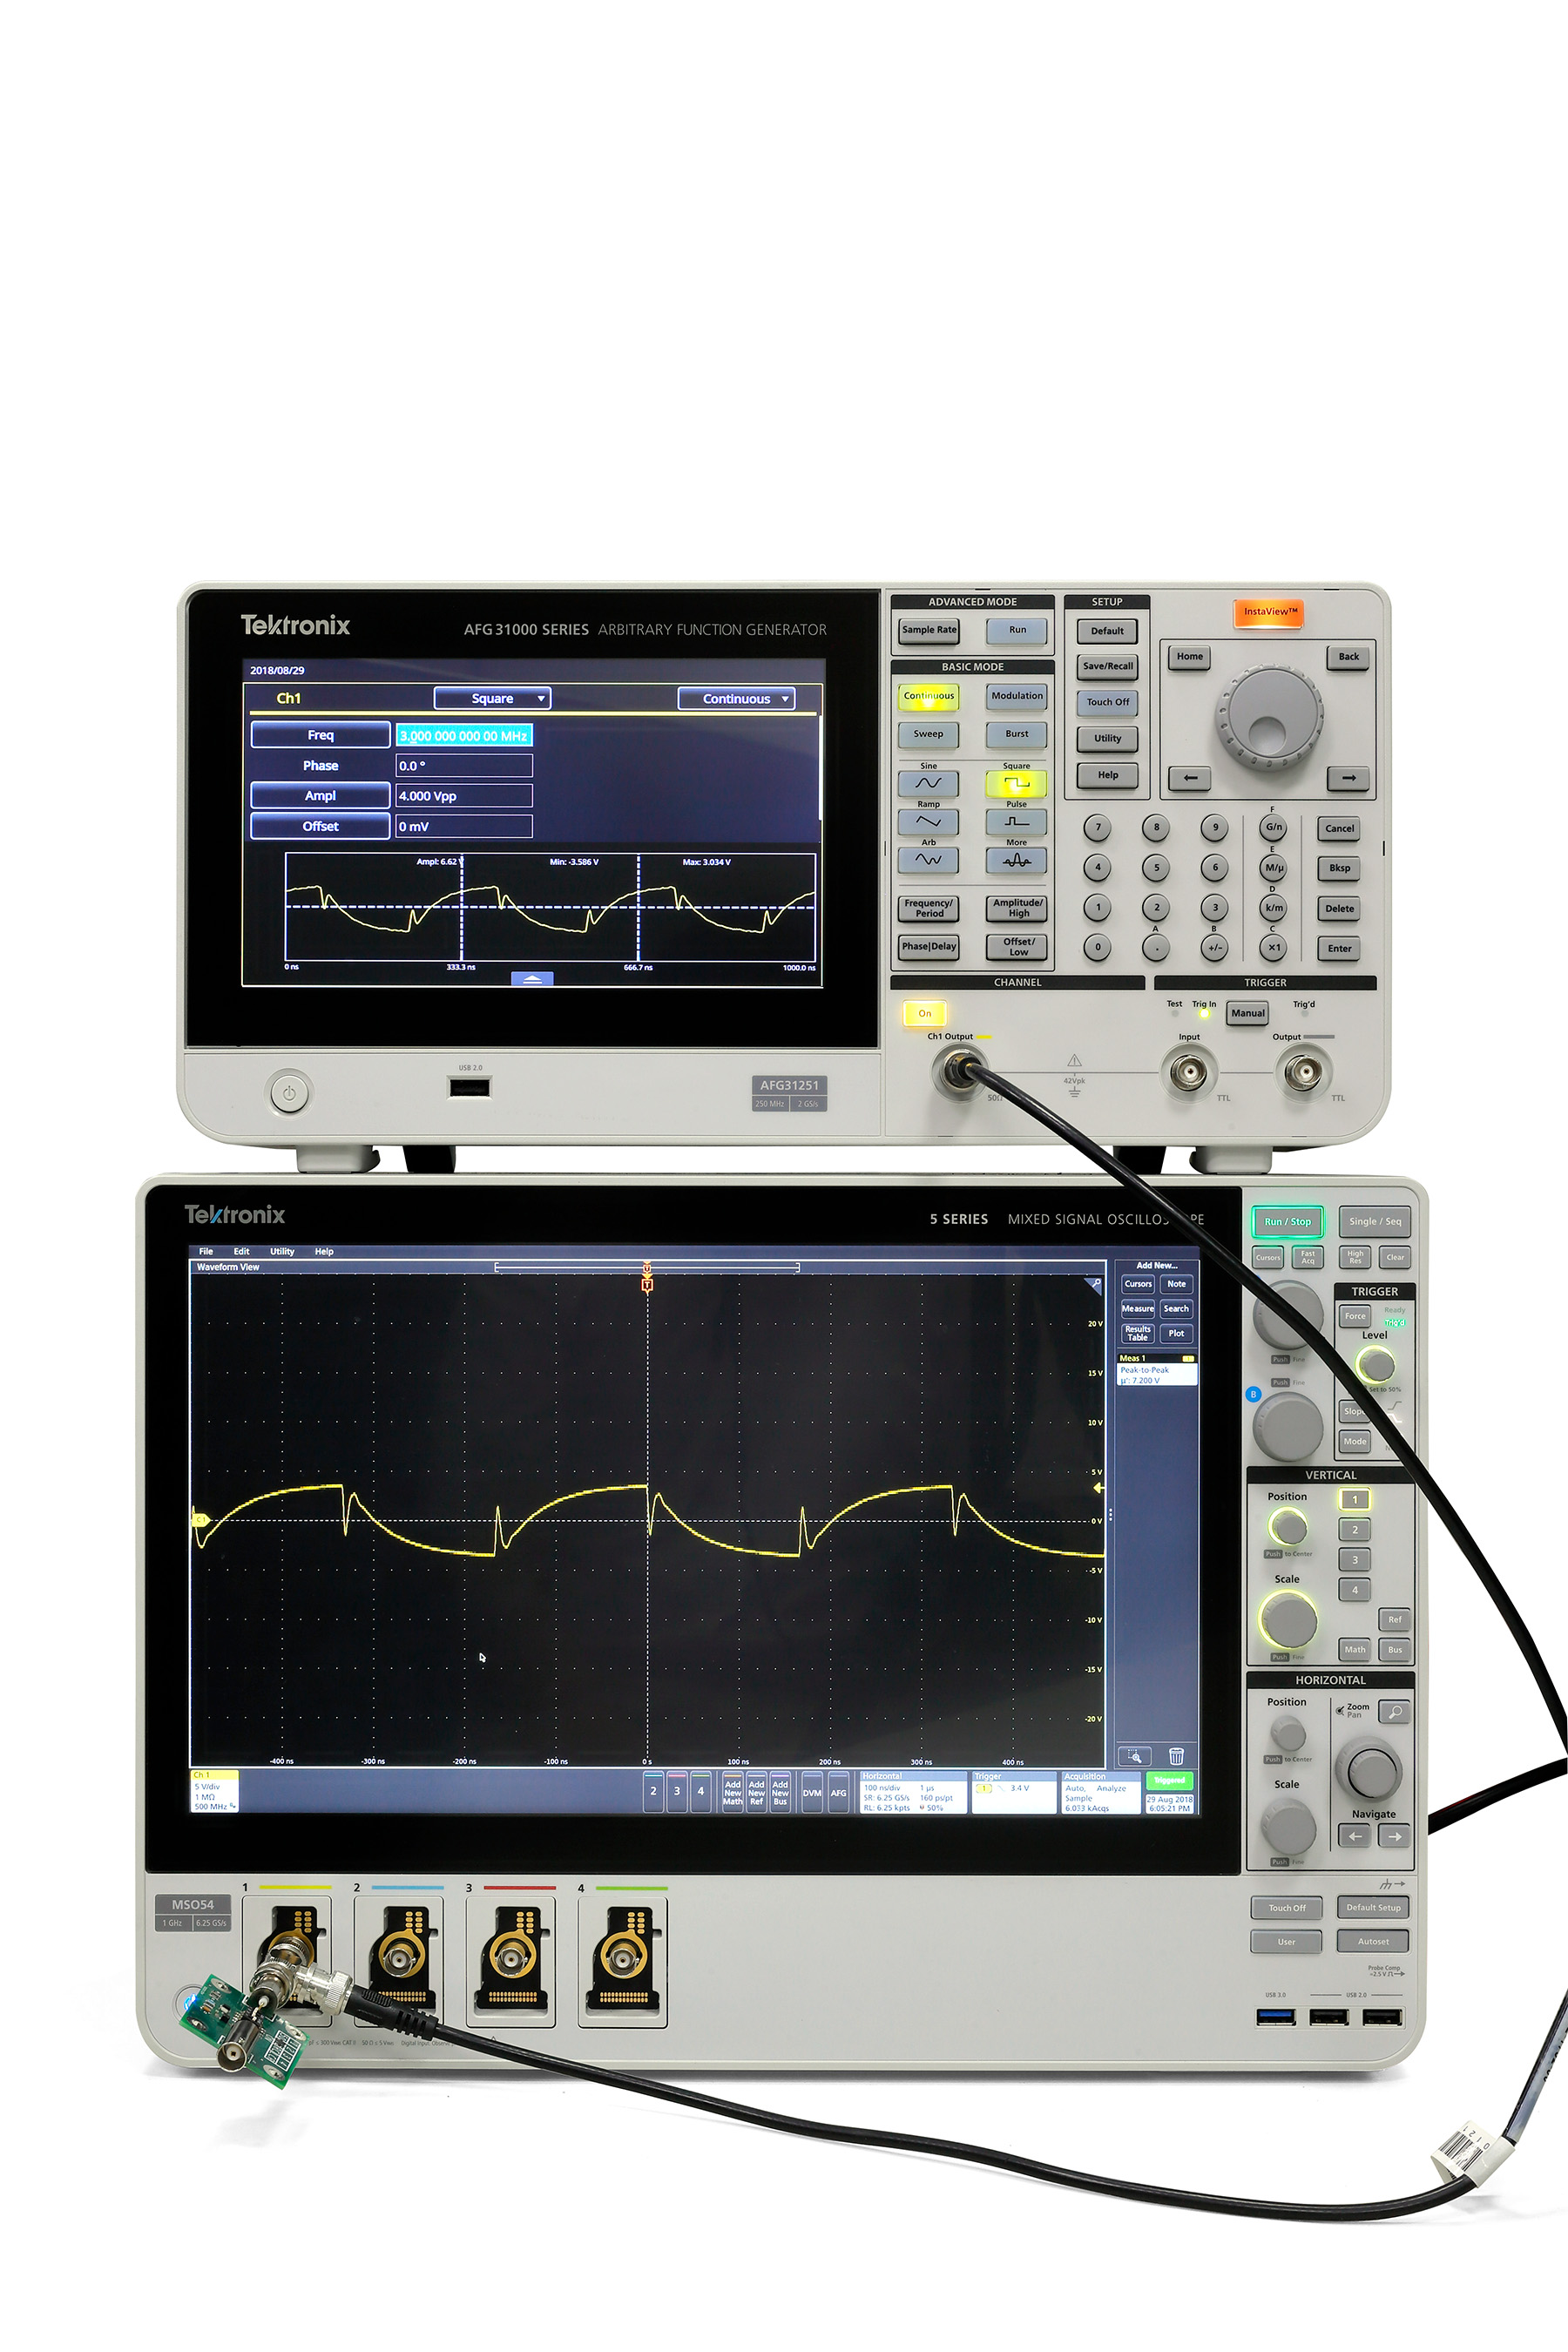 With patented InstaView™ technology, the AFG31000 series can monitor and display the actual waveform at the device under test.